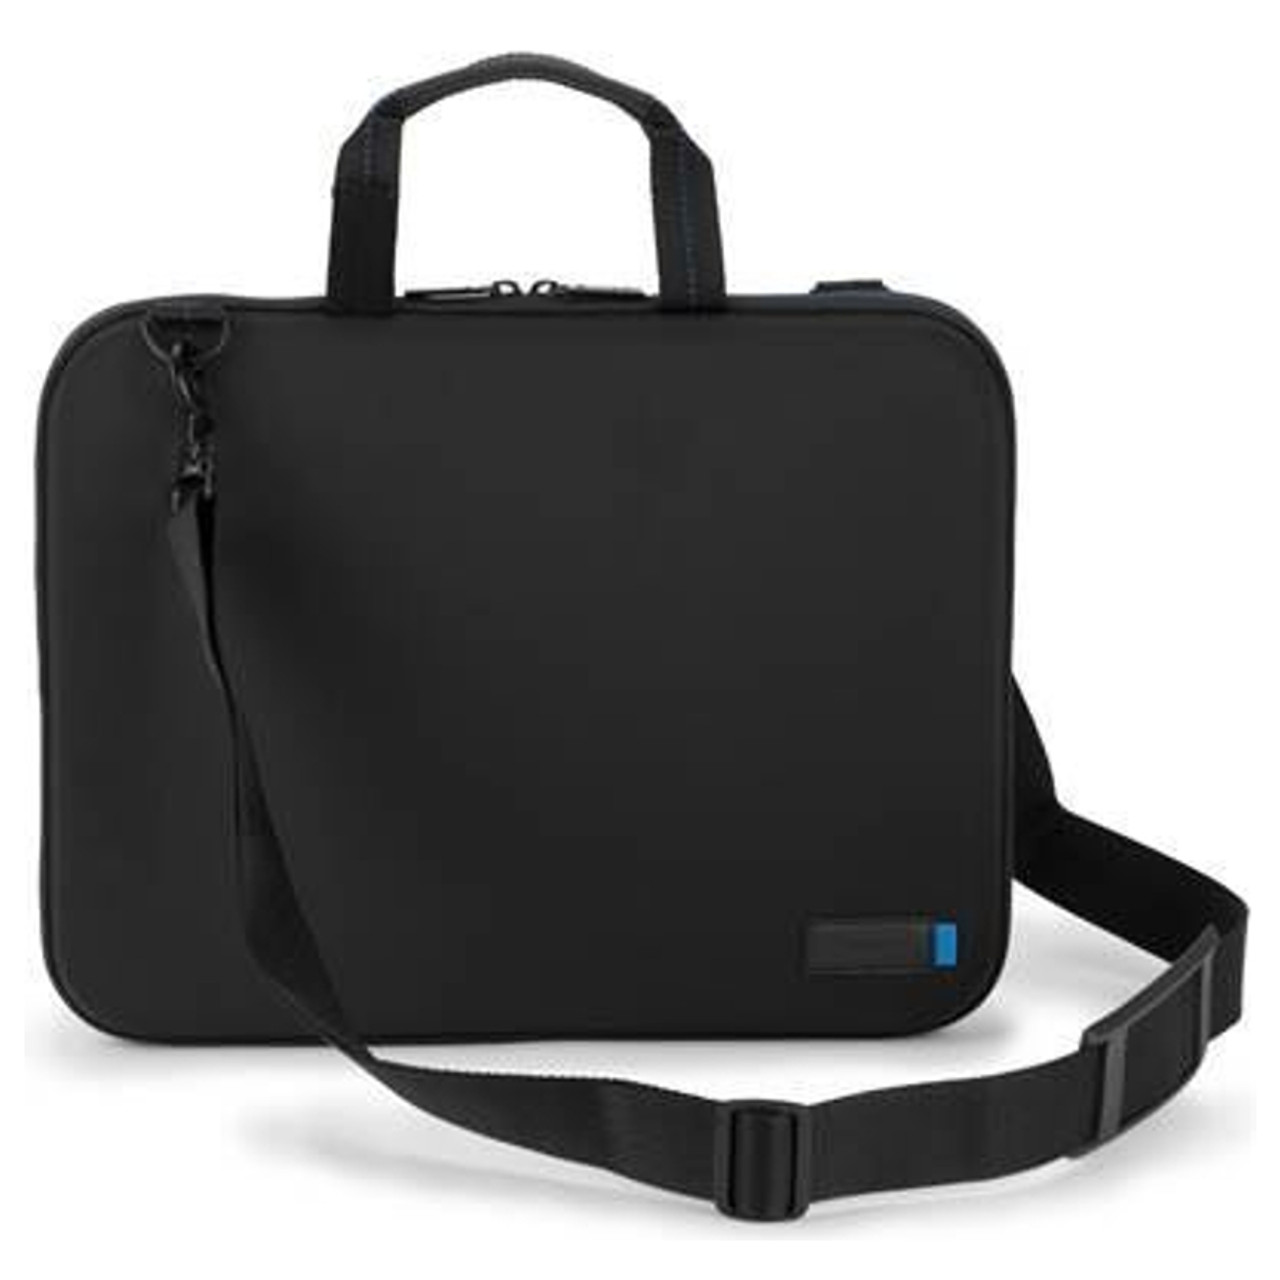 Image for Targus 11.6in Orbus 3.0 Thin & Light Laptop Bag CX Computer Superstore